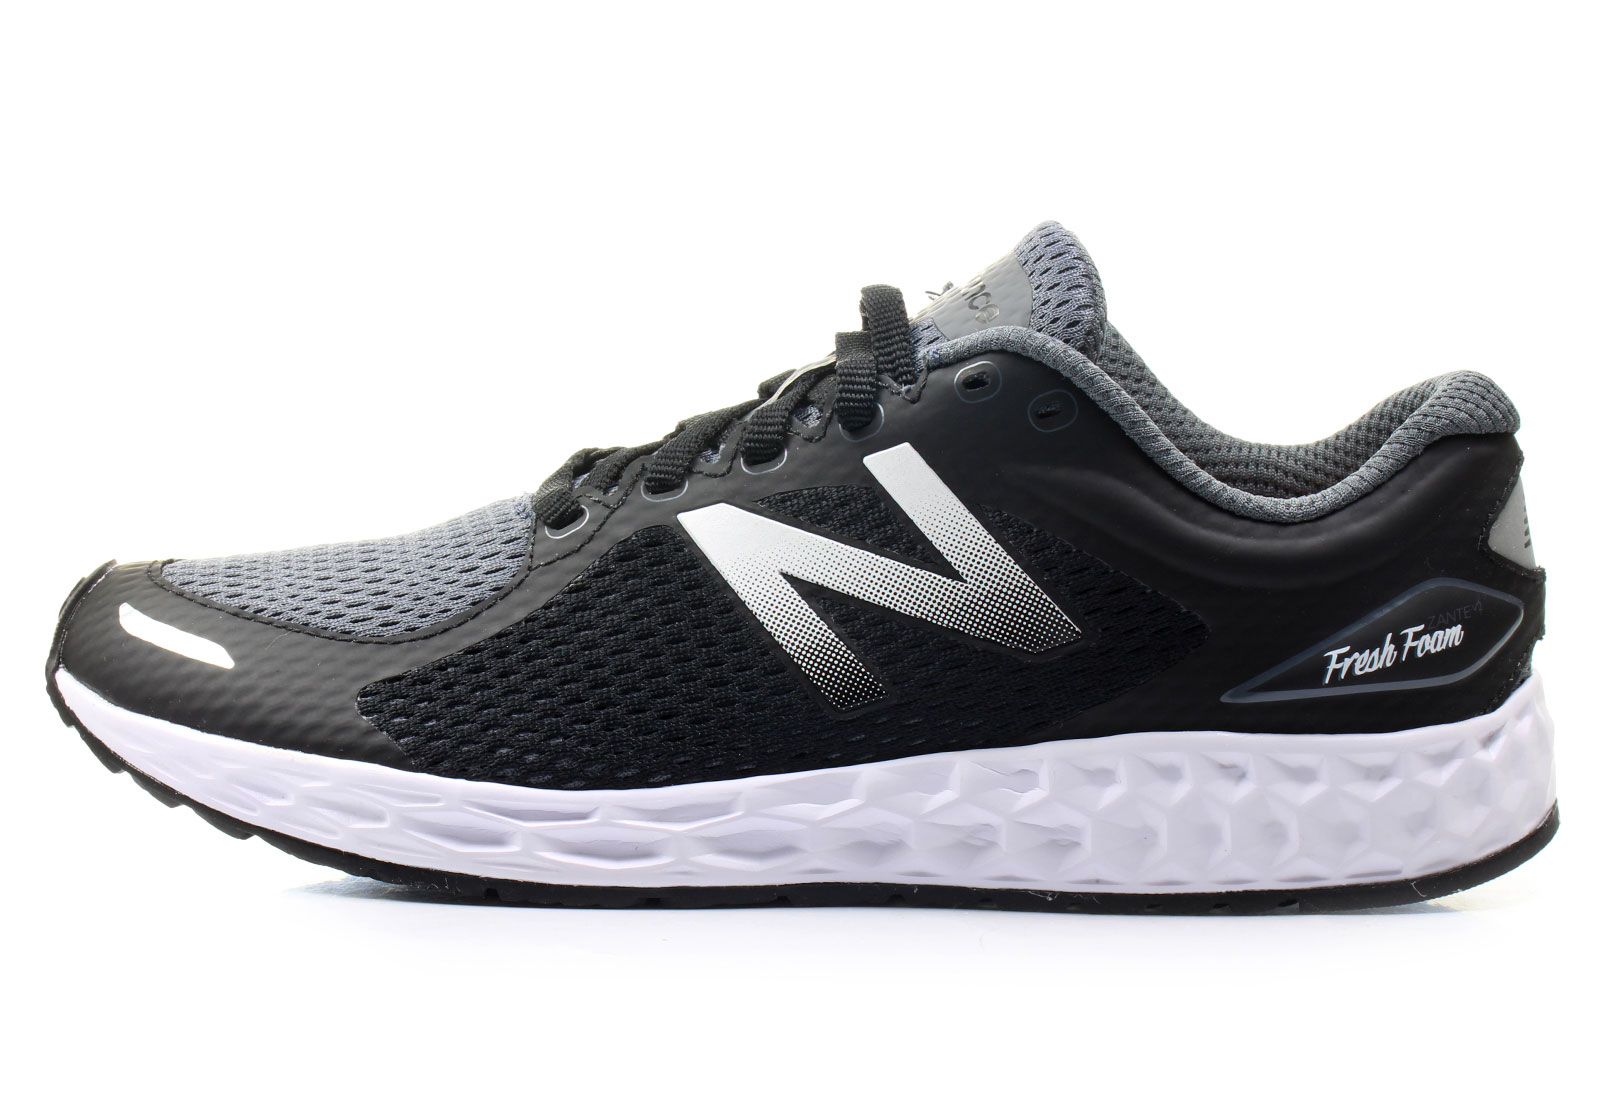 New Balance Shoes - Kjznt - KJZNTBWY - Online shop for sneakers ... bd645ba80c